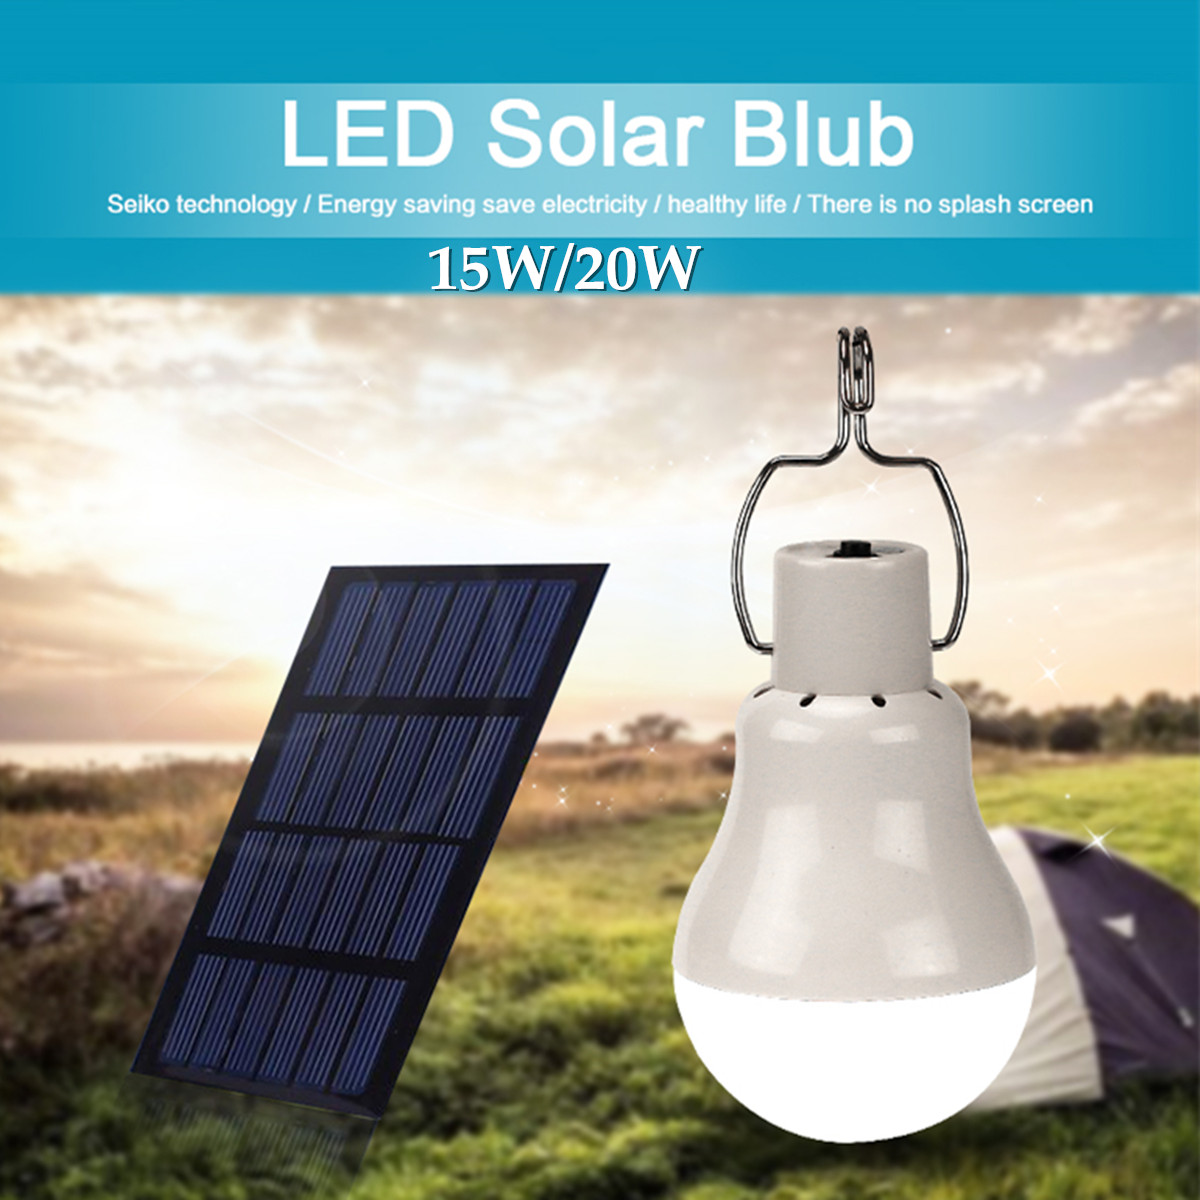 Camping Solar Panel Power Portable Outdoor 15W/20W LED Bulb Light Energy Clean Saving Lamp Long Life Expectancy Rechargeable